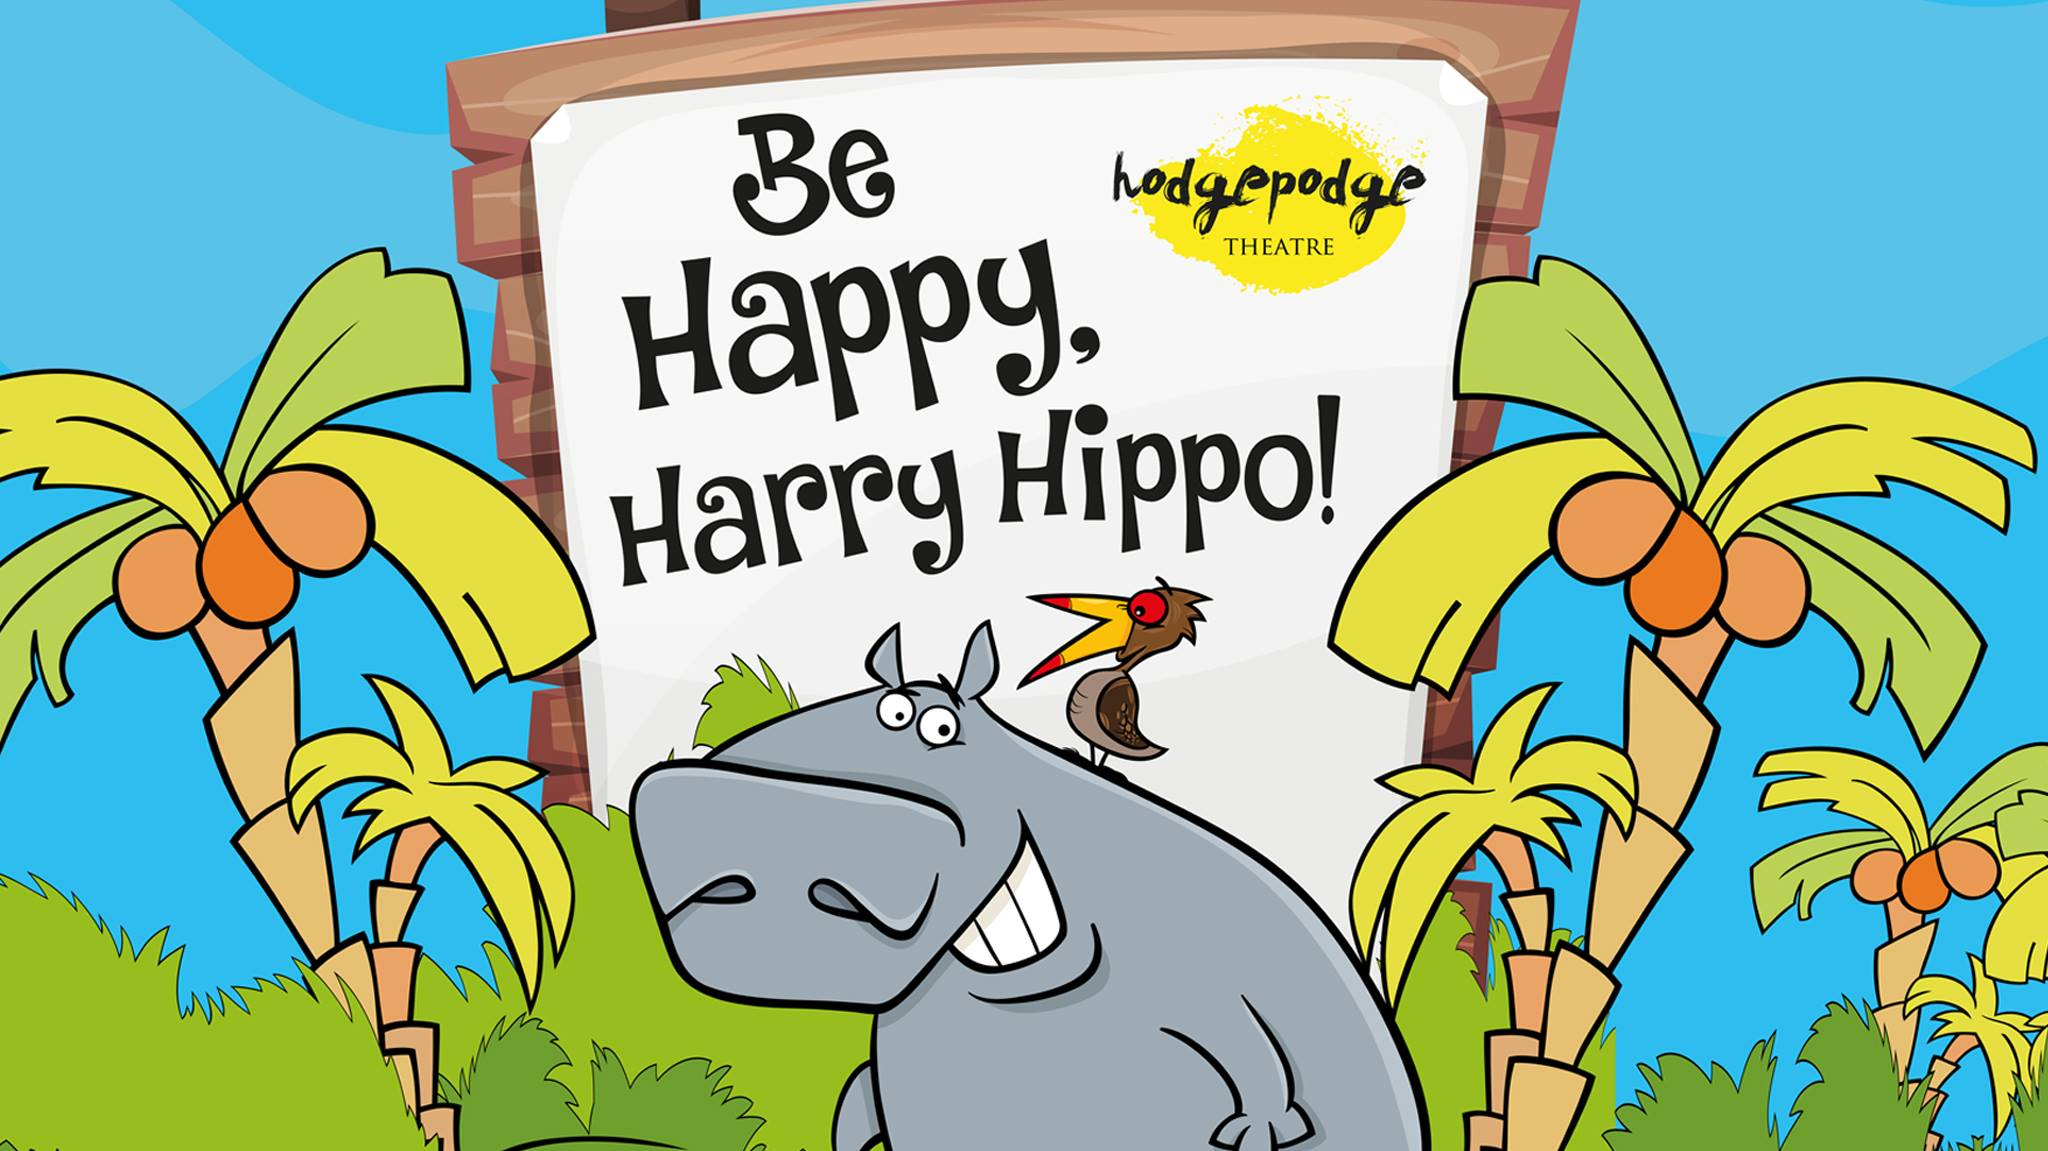 Be Happy, Harry Hippo!